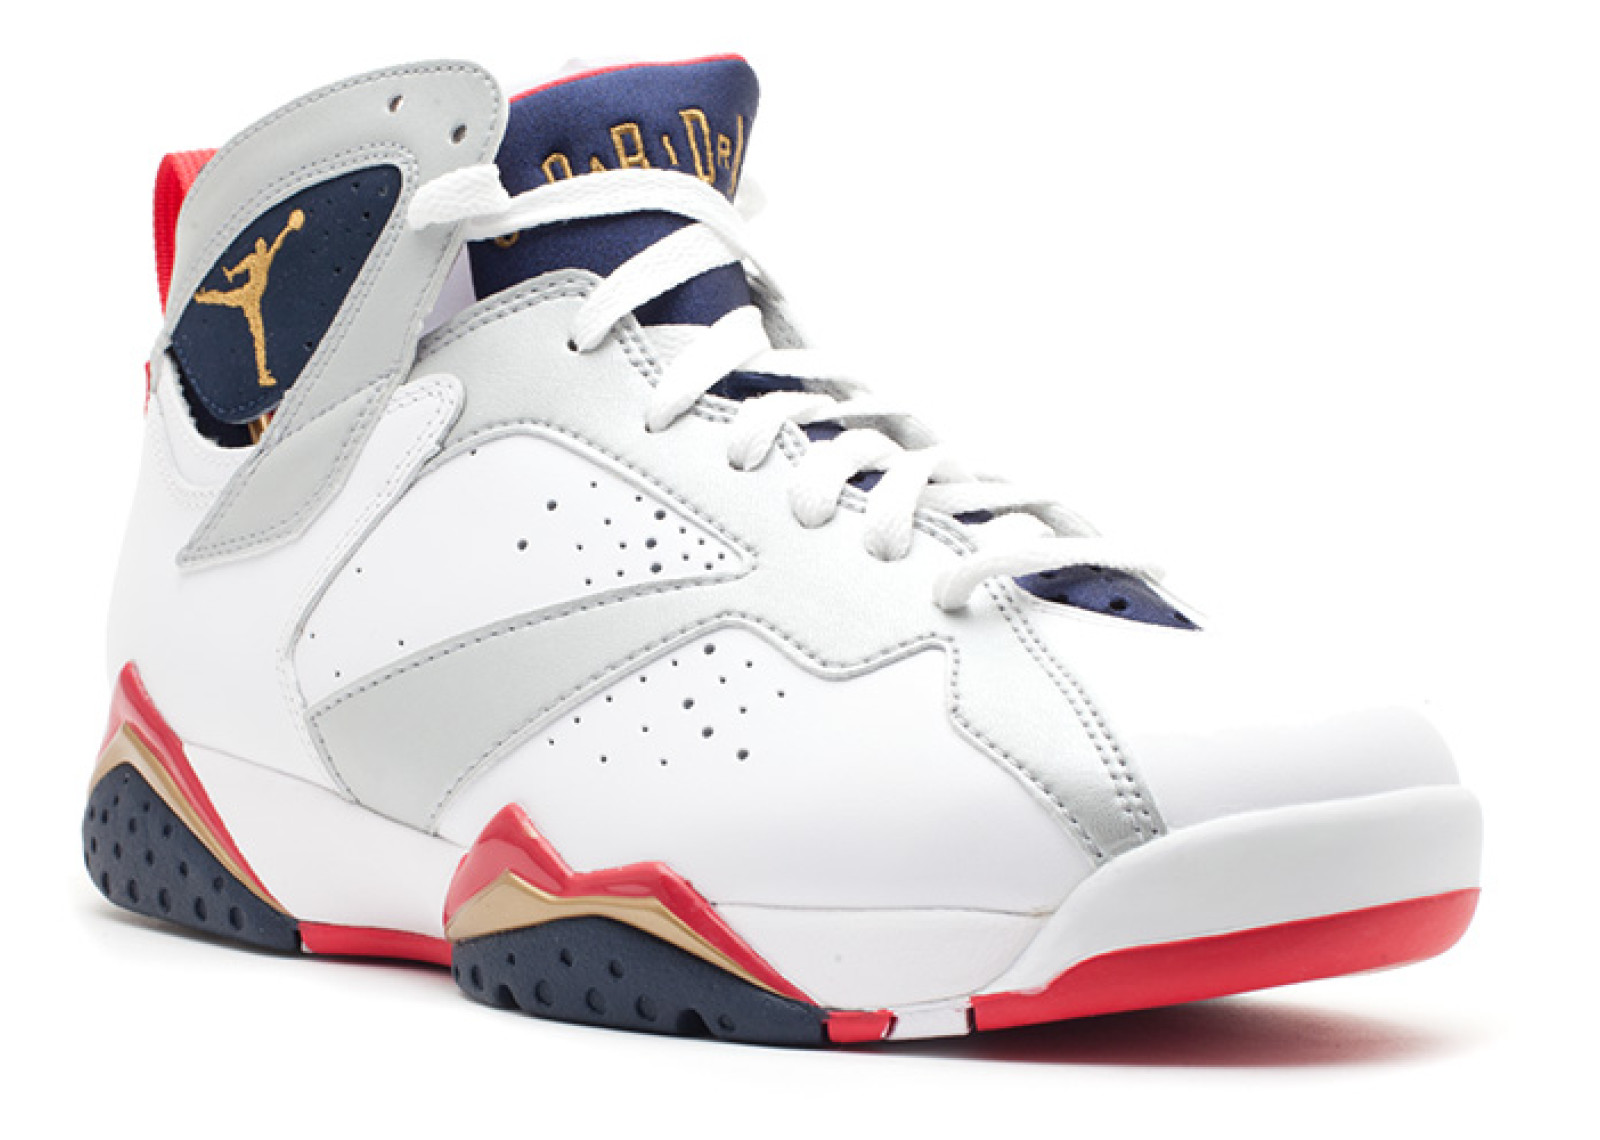 d8231bb410f7 Air Jordan - Men - Air Jordan 7 Retro  Olympic 2012 Release  - 304775-135 -  Size 11.5